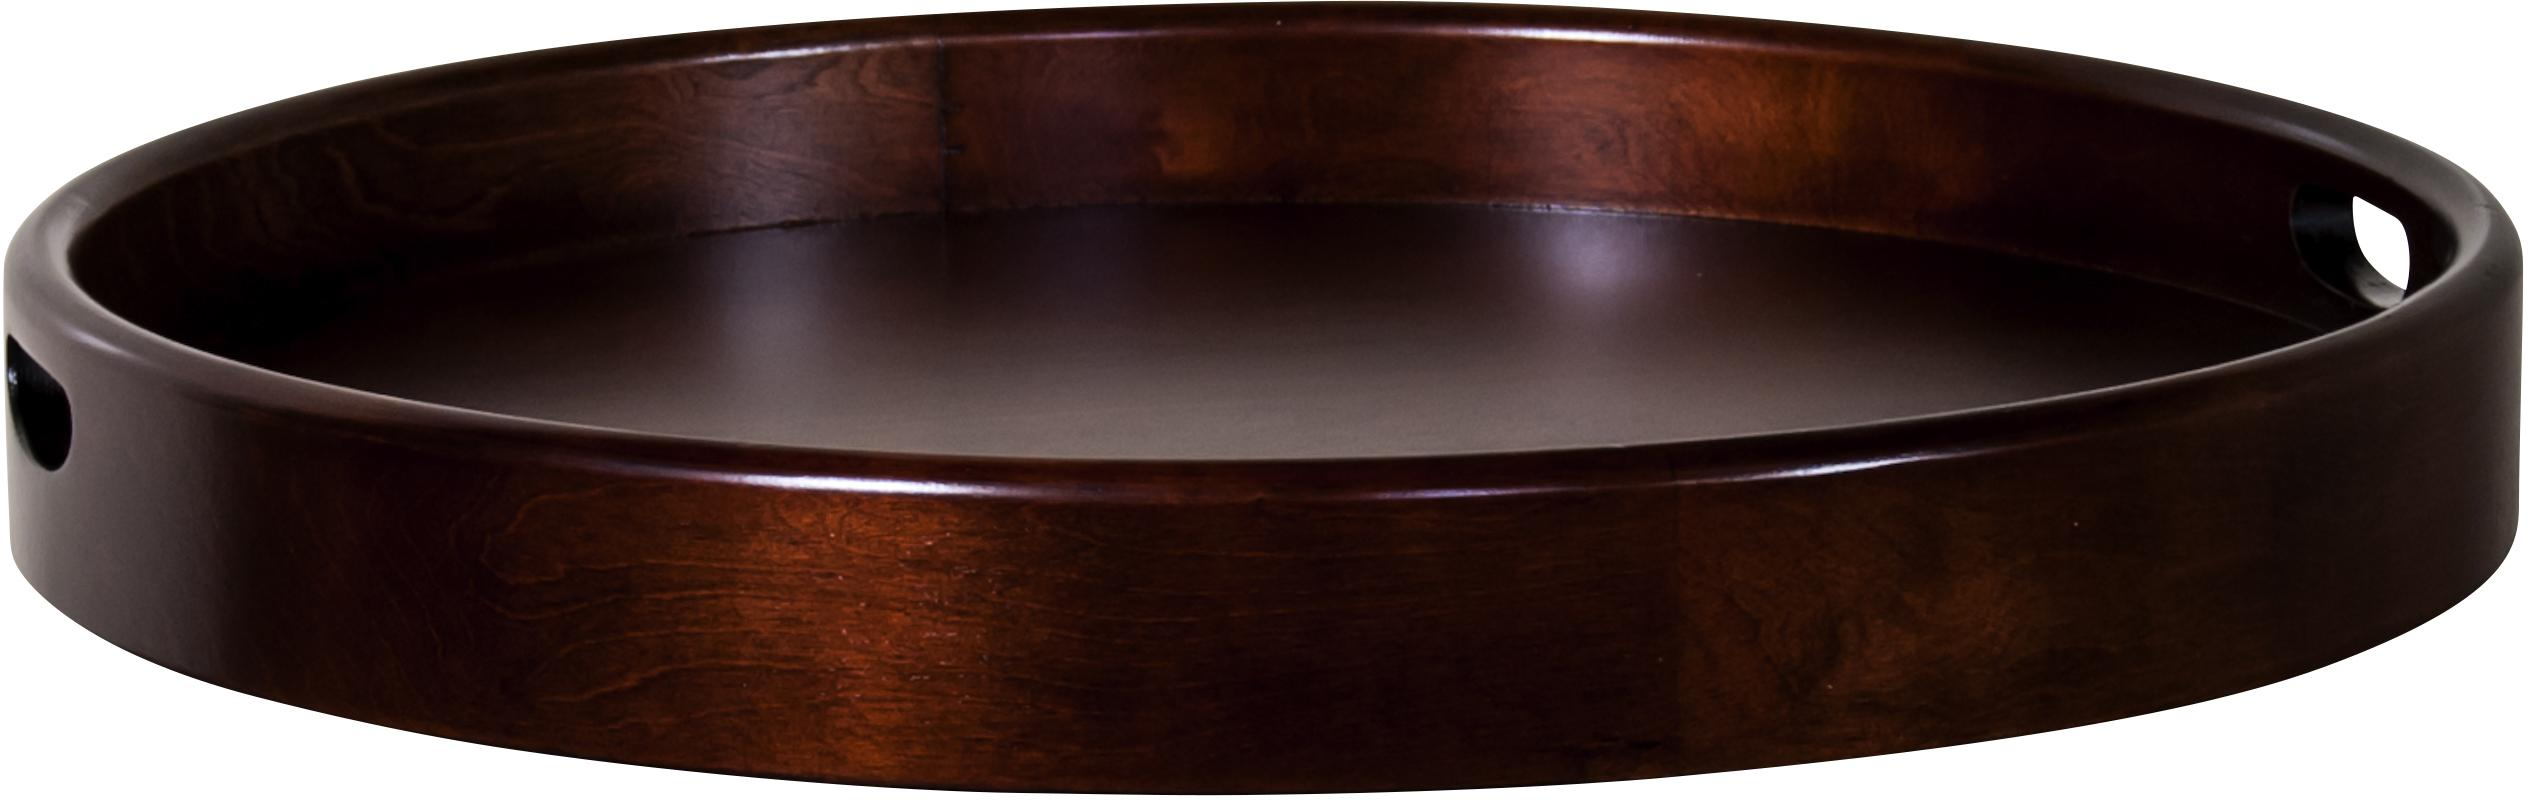 Sunny Designs Cappuccino Round Tray - Item Number: 2235CA